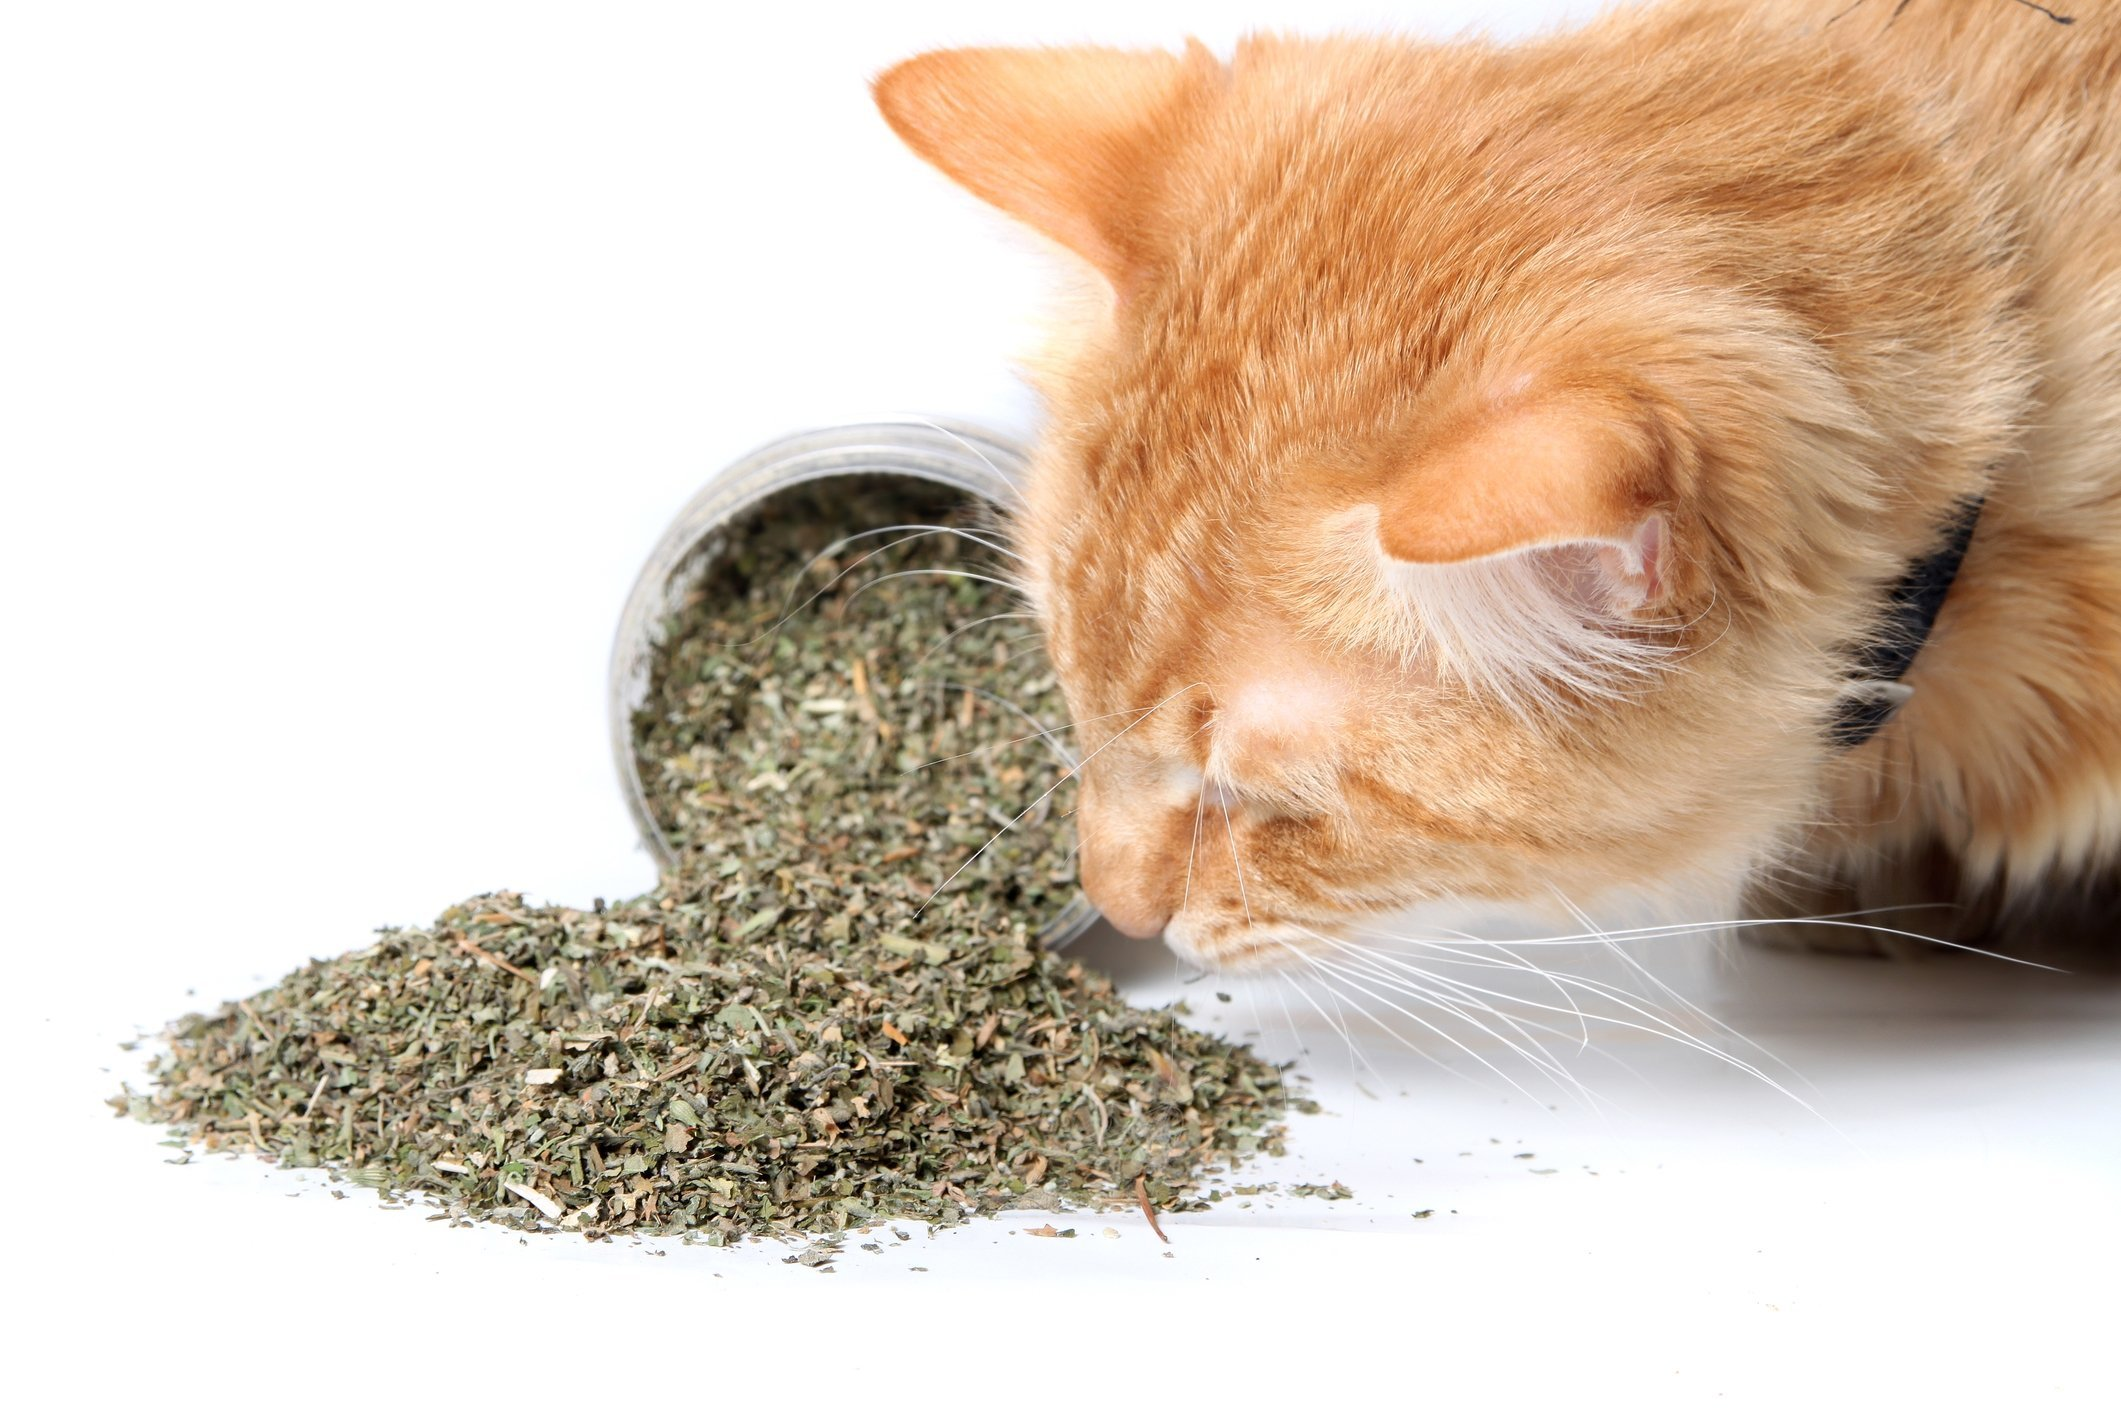 Cat Crack Catnip, Premium Blend Safe for Cats, Infused with Maximum Potency Your Kitty is Guaranteed to Go Crazy for! - 10 Cups Bulk